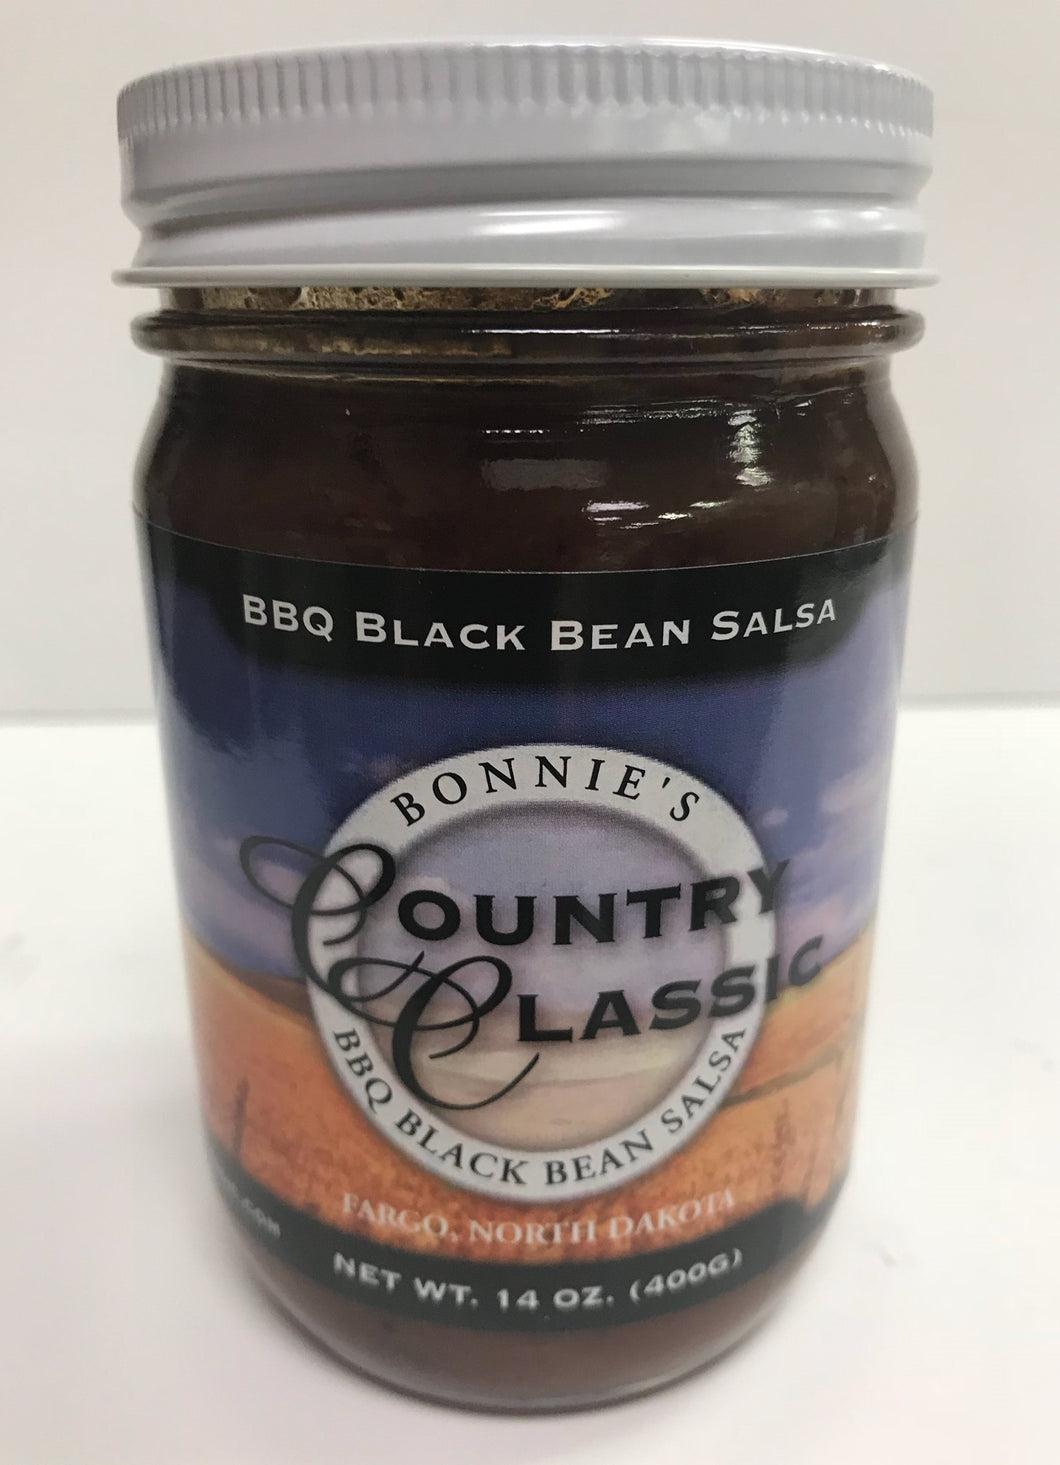 BBQ Black Bean Salsa